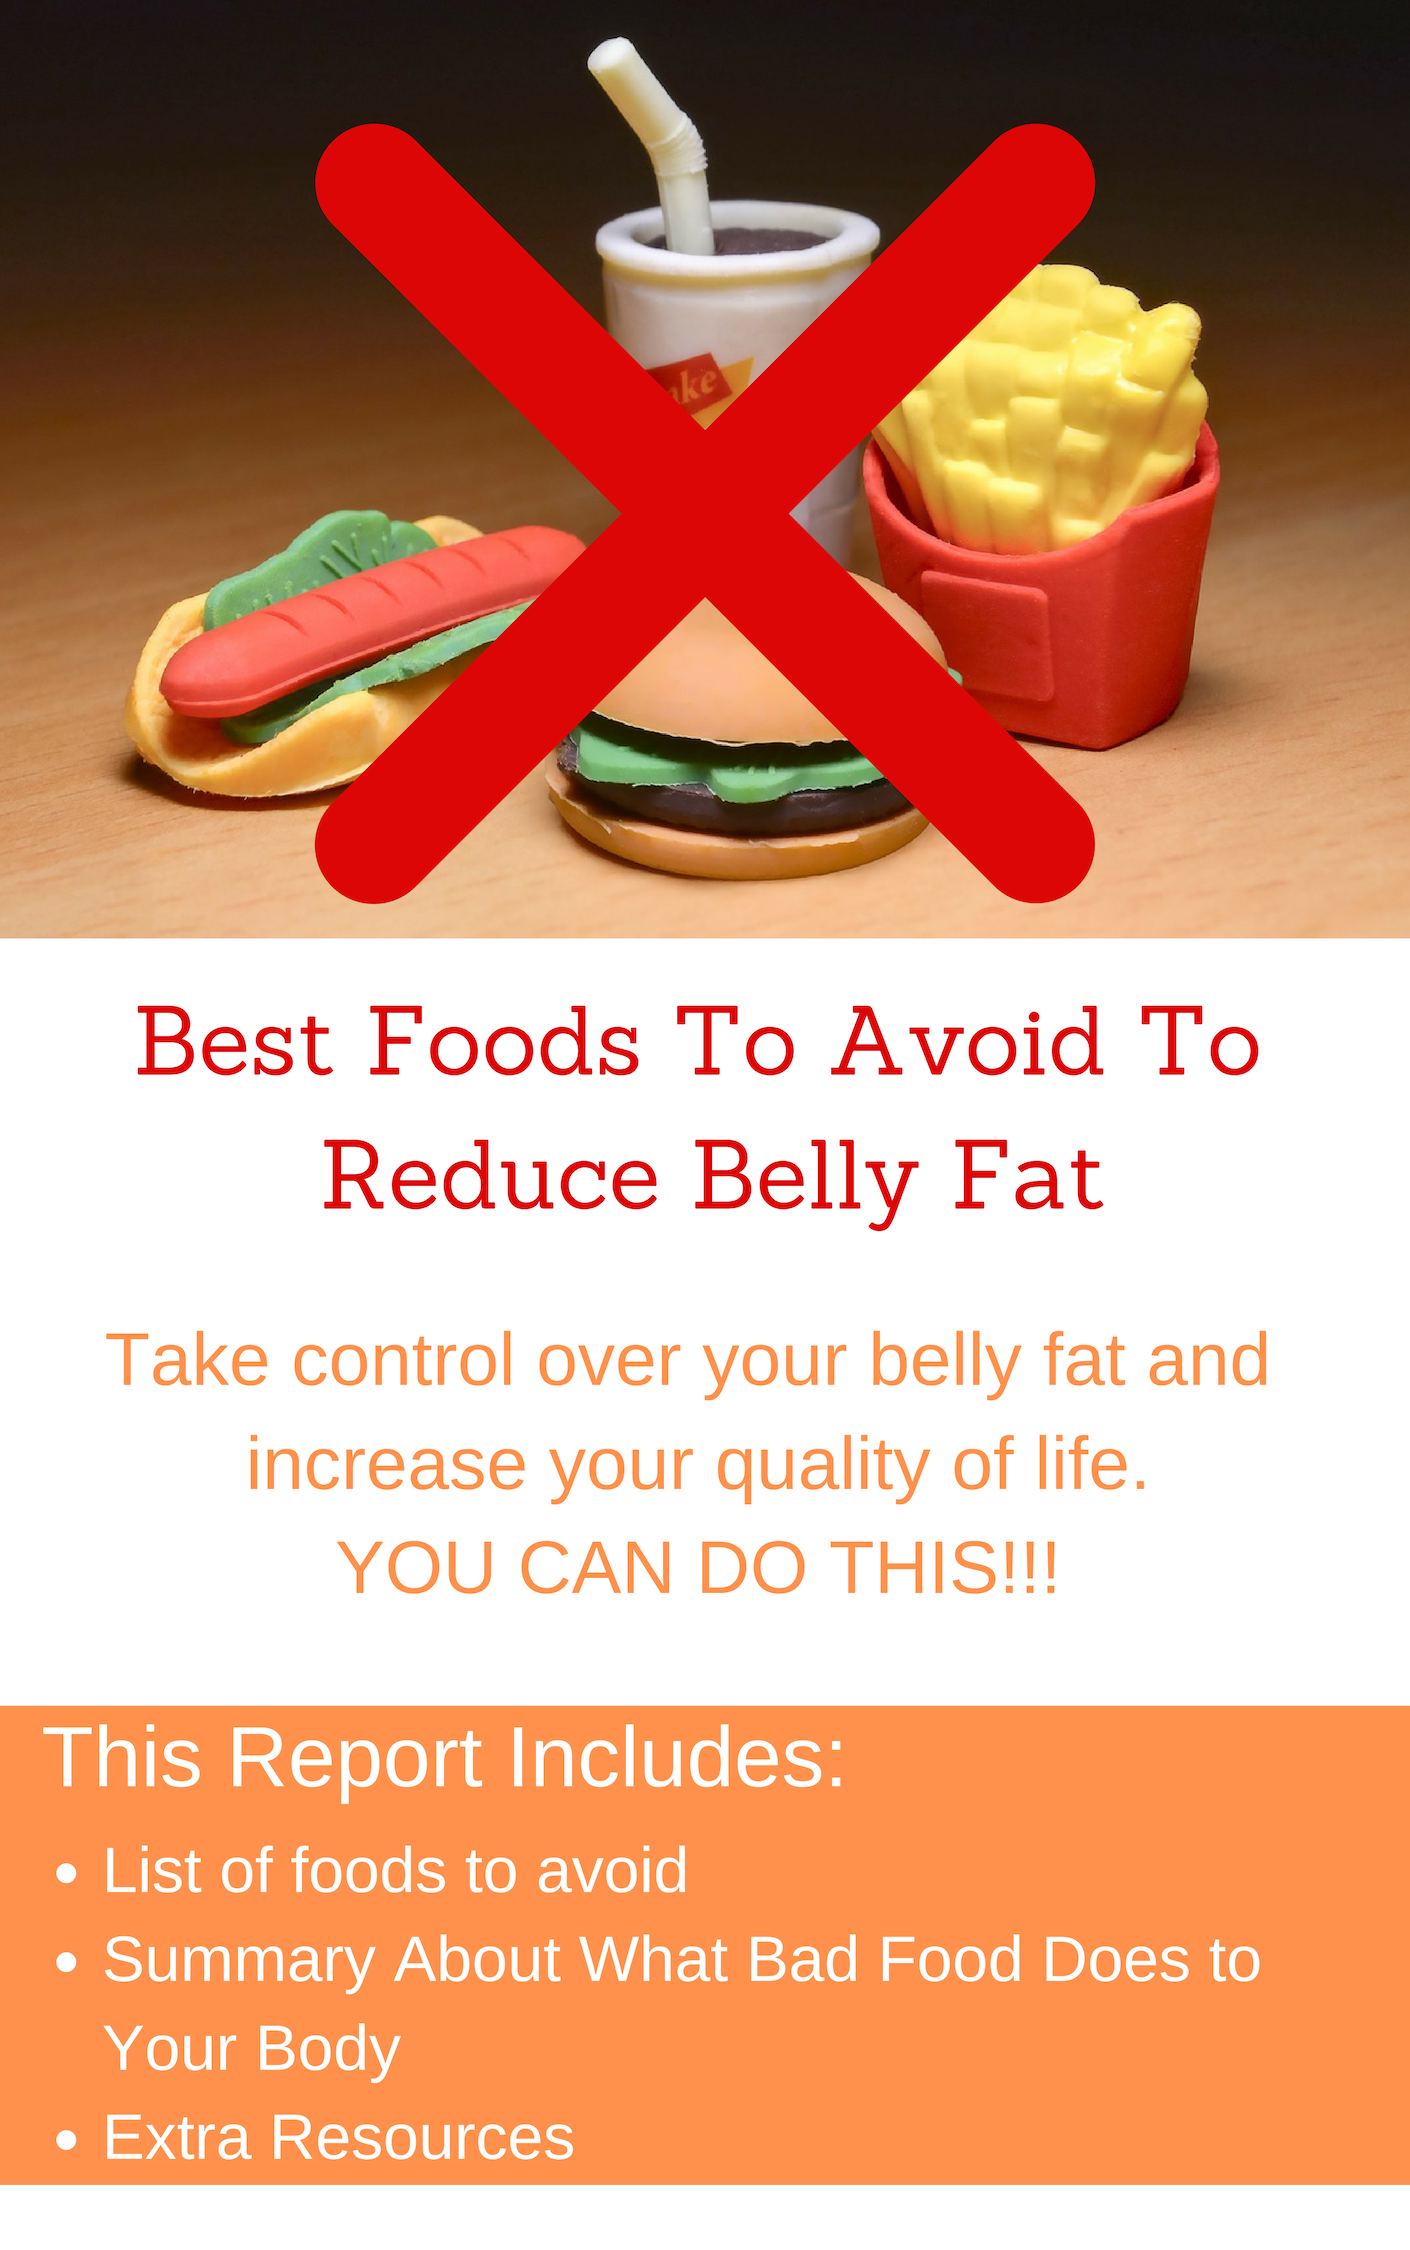 Best Foods To Avoid To Reduce Bbely Fat